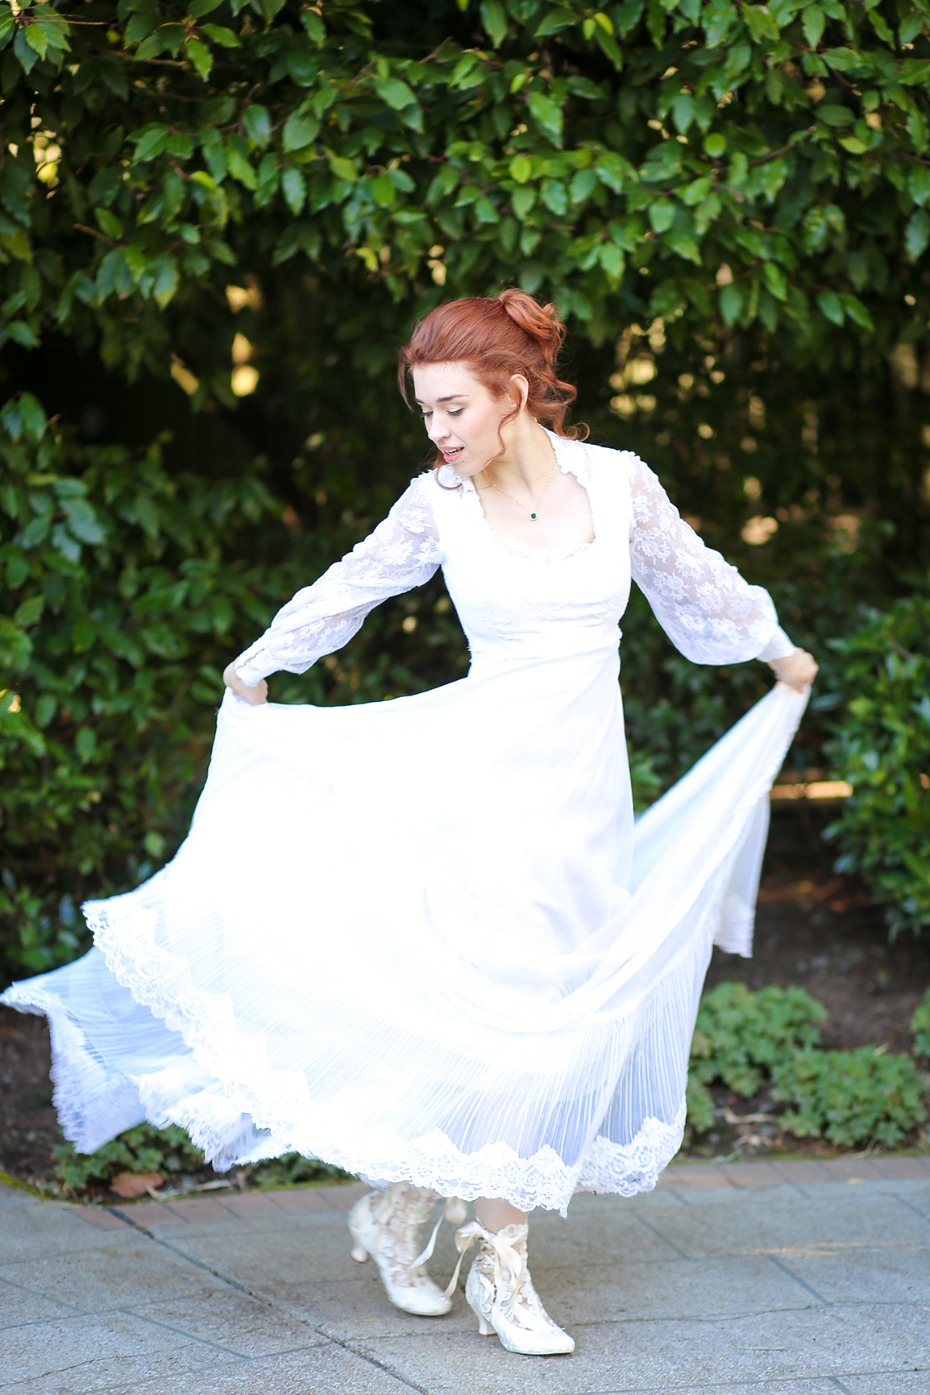 Vintage wedding dress and shoes